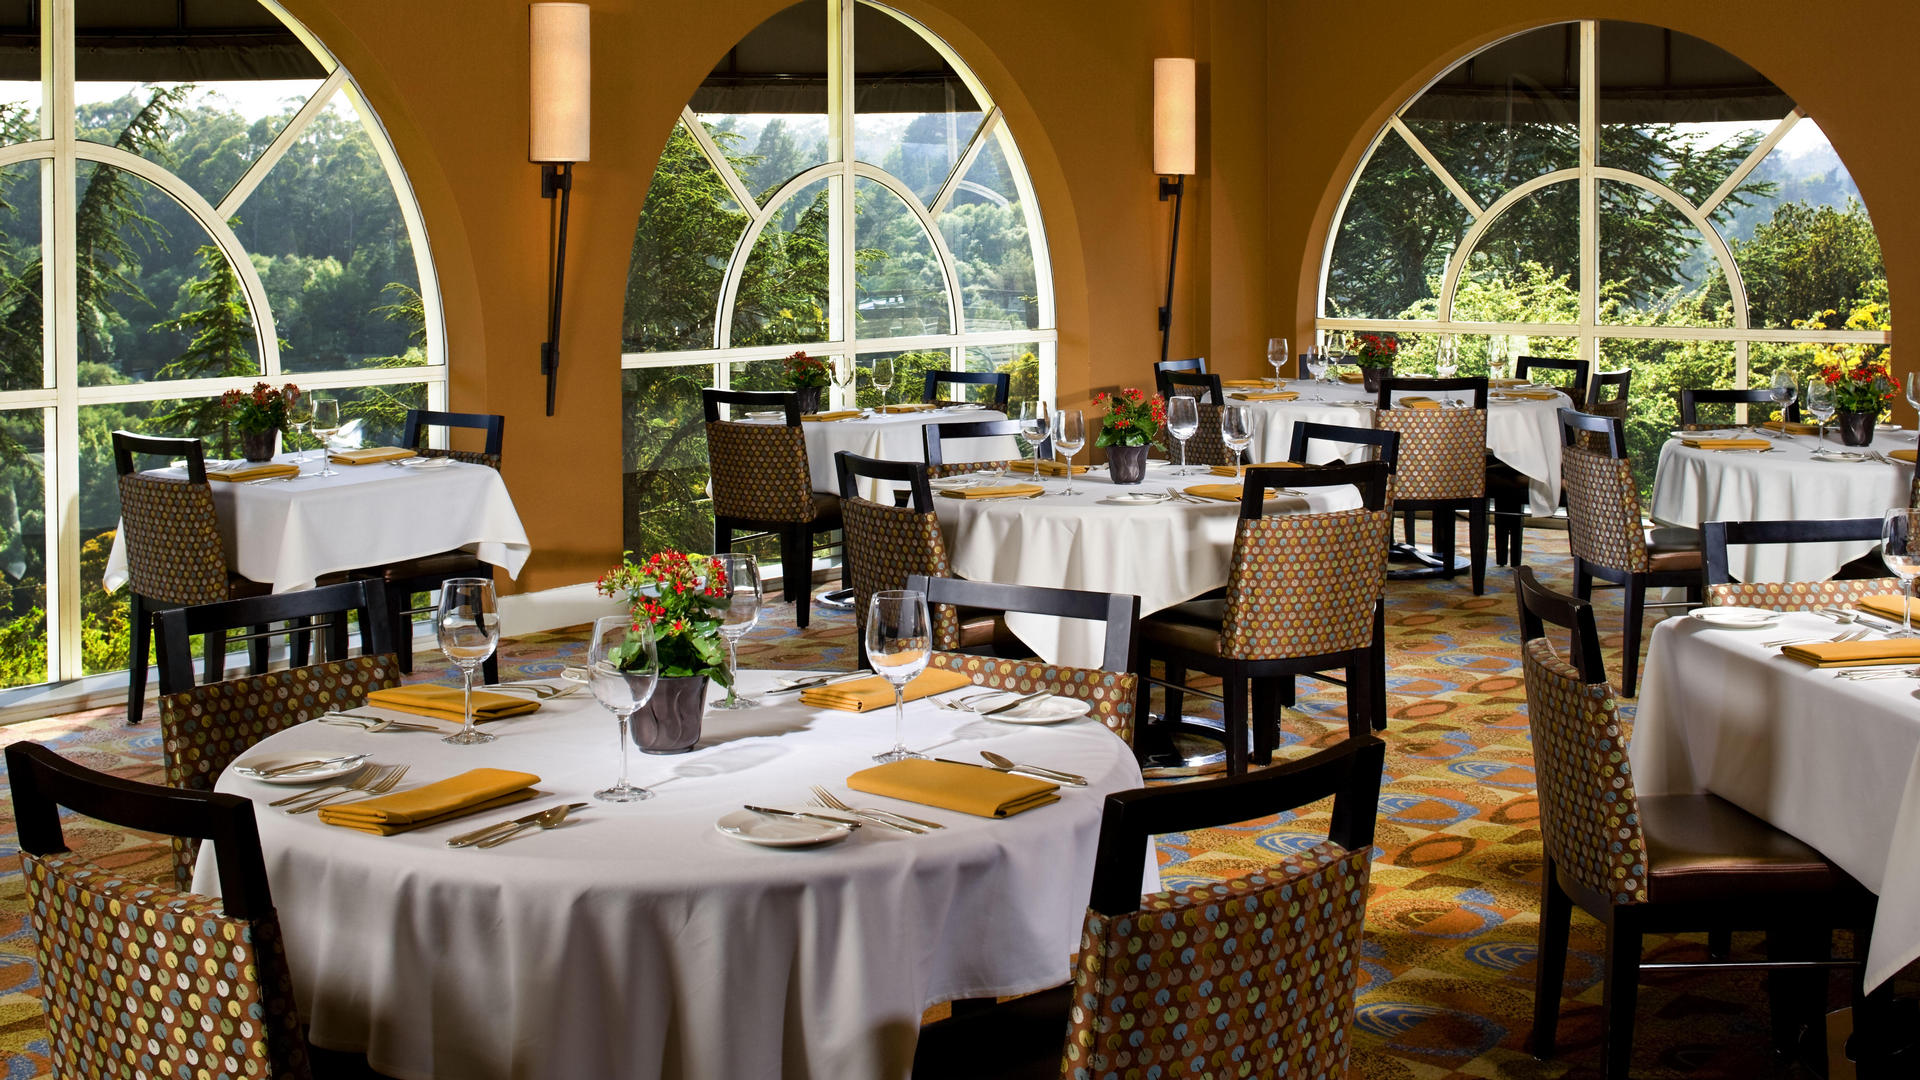 Sunset Restaurant at Chaminade Resort & Spa in Santa Cruz, CA